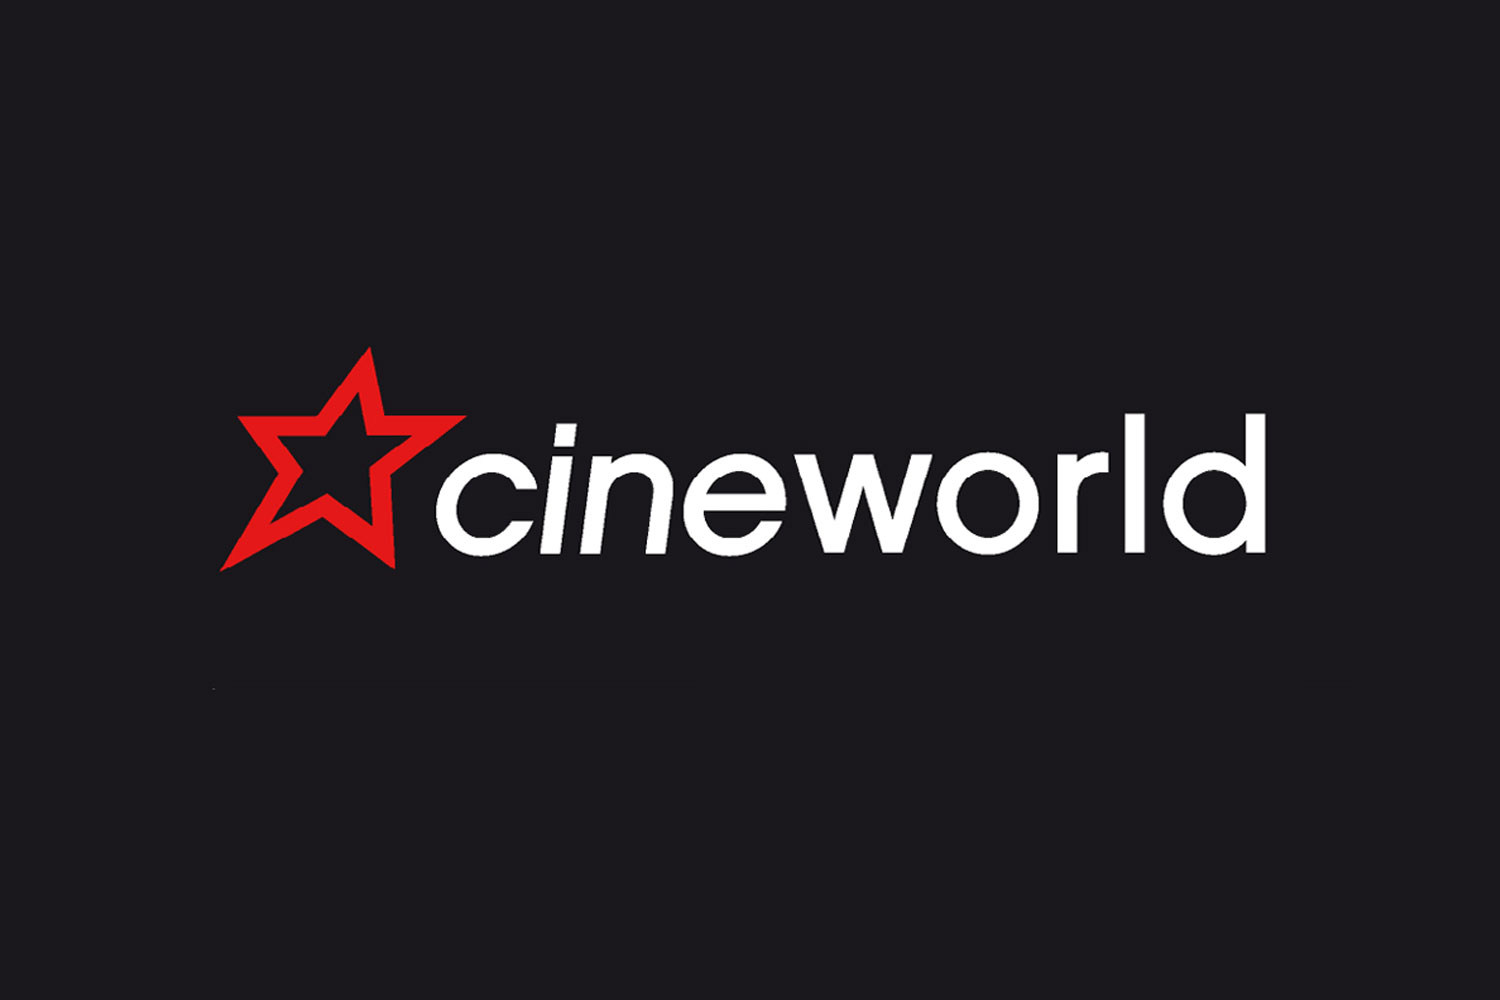 Cineworld 4 day special